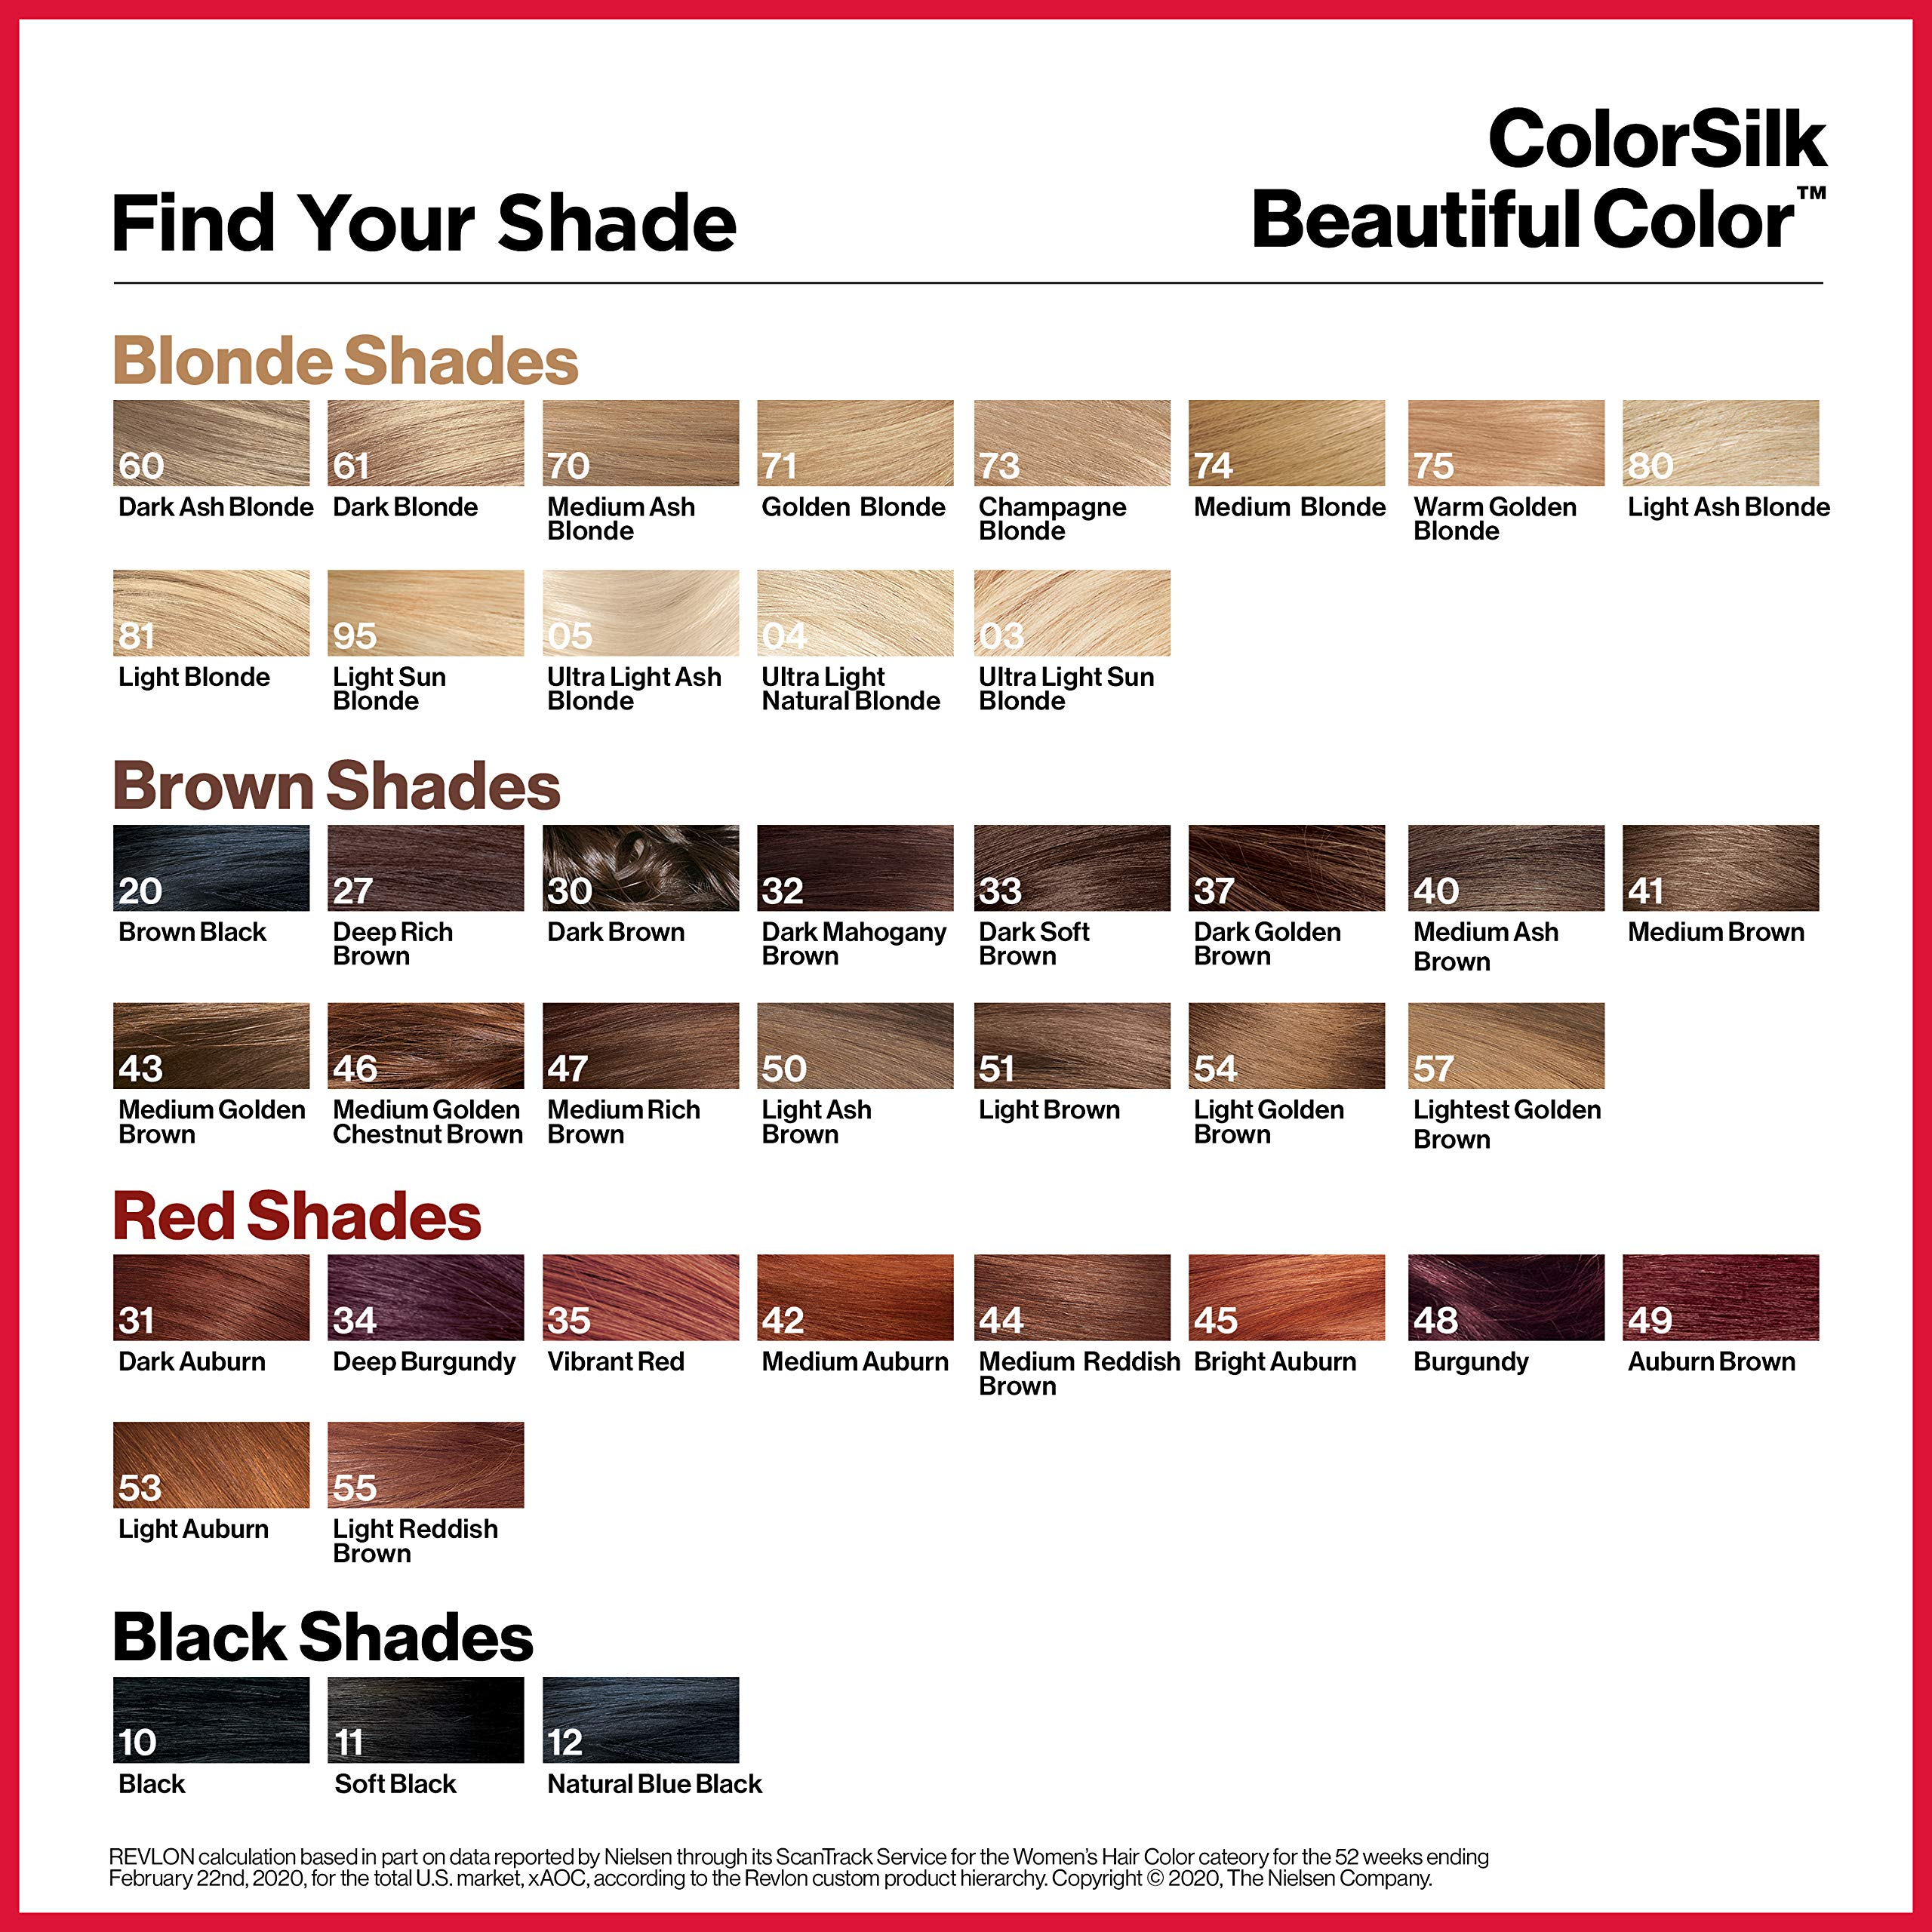 REVLON Colorsilk Beautiful Color Permanent Hair Color with 3D Gel Technology & Keratin, 100% Gray Coverage Hair Dye, 49 Auburn Brown, 4.4 oz (Pack of 3)